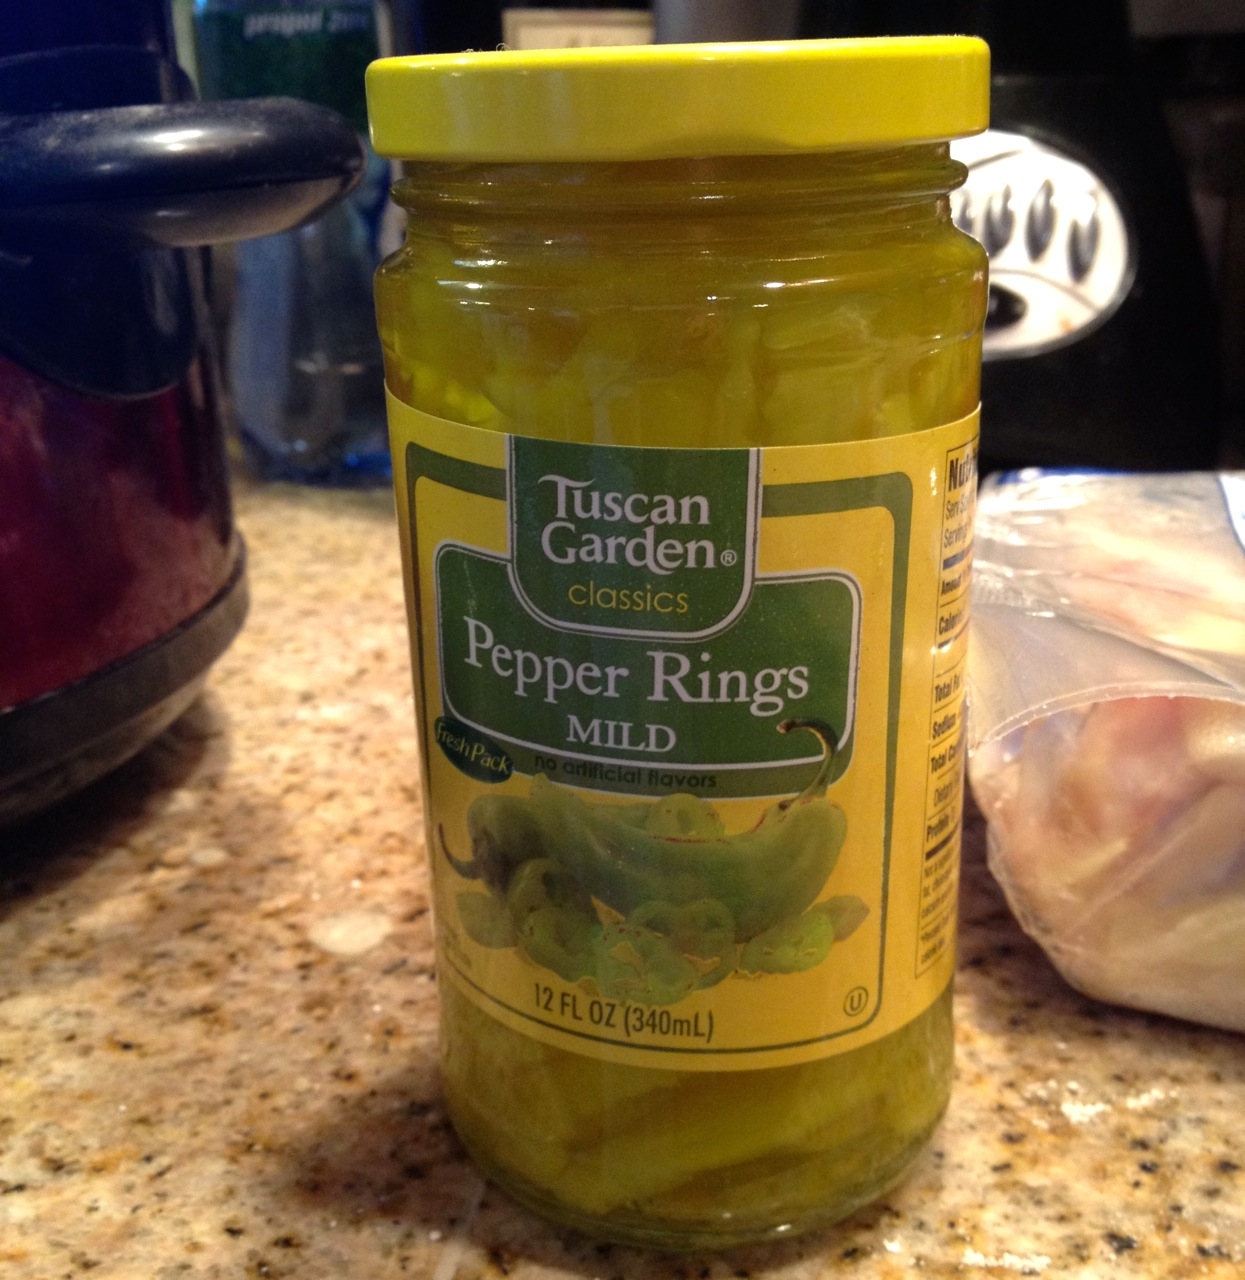 Jar of Pepper Rings